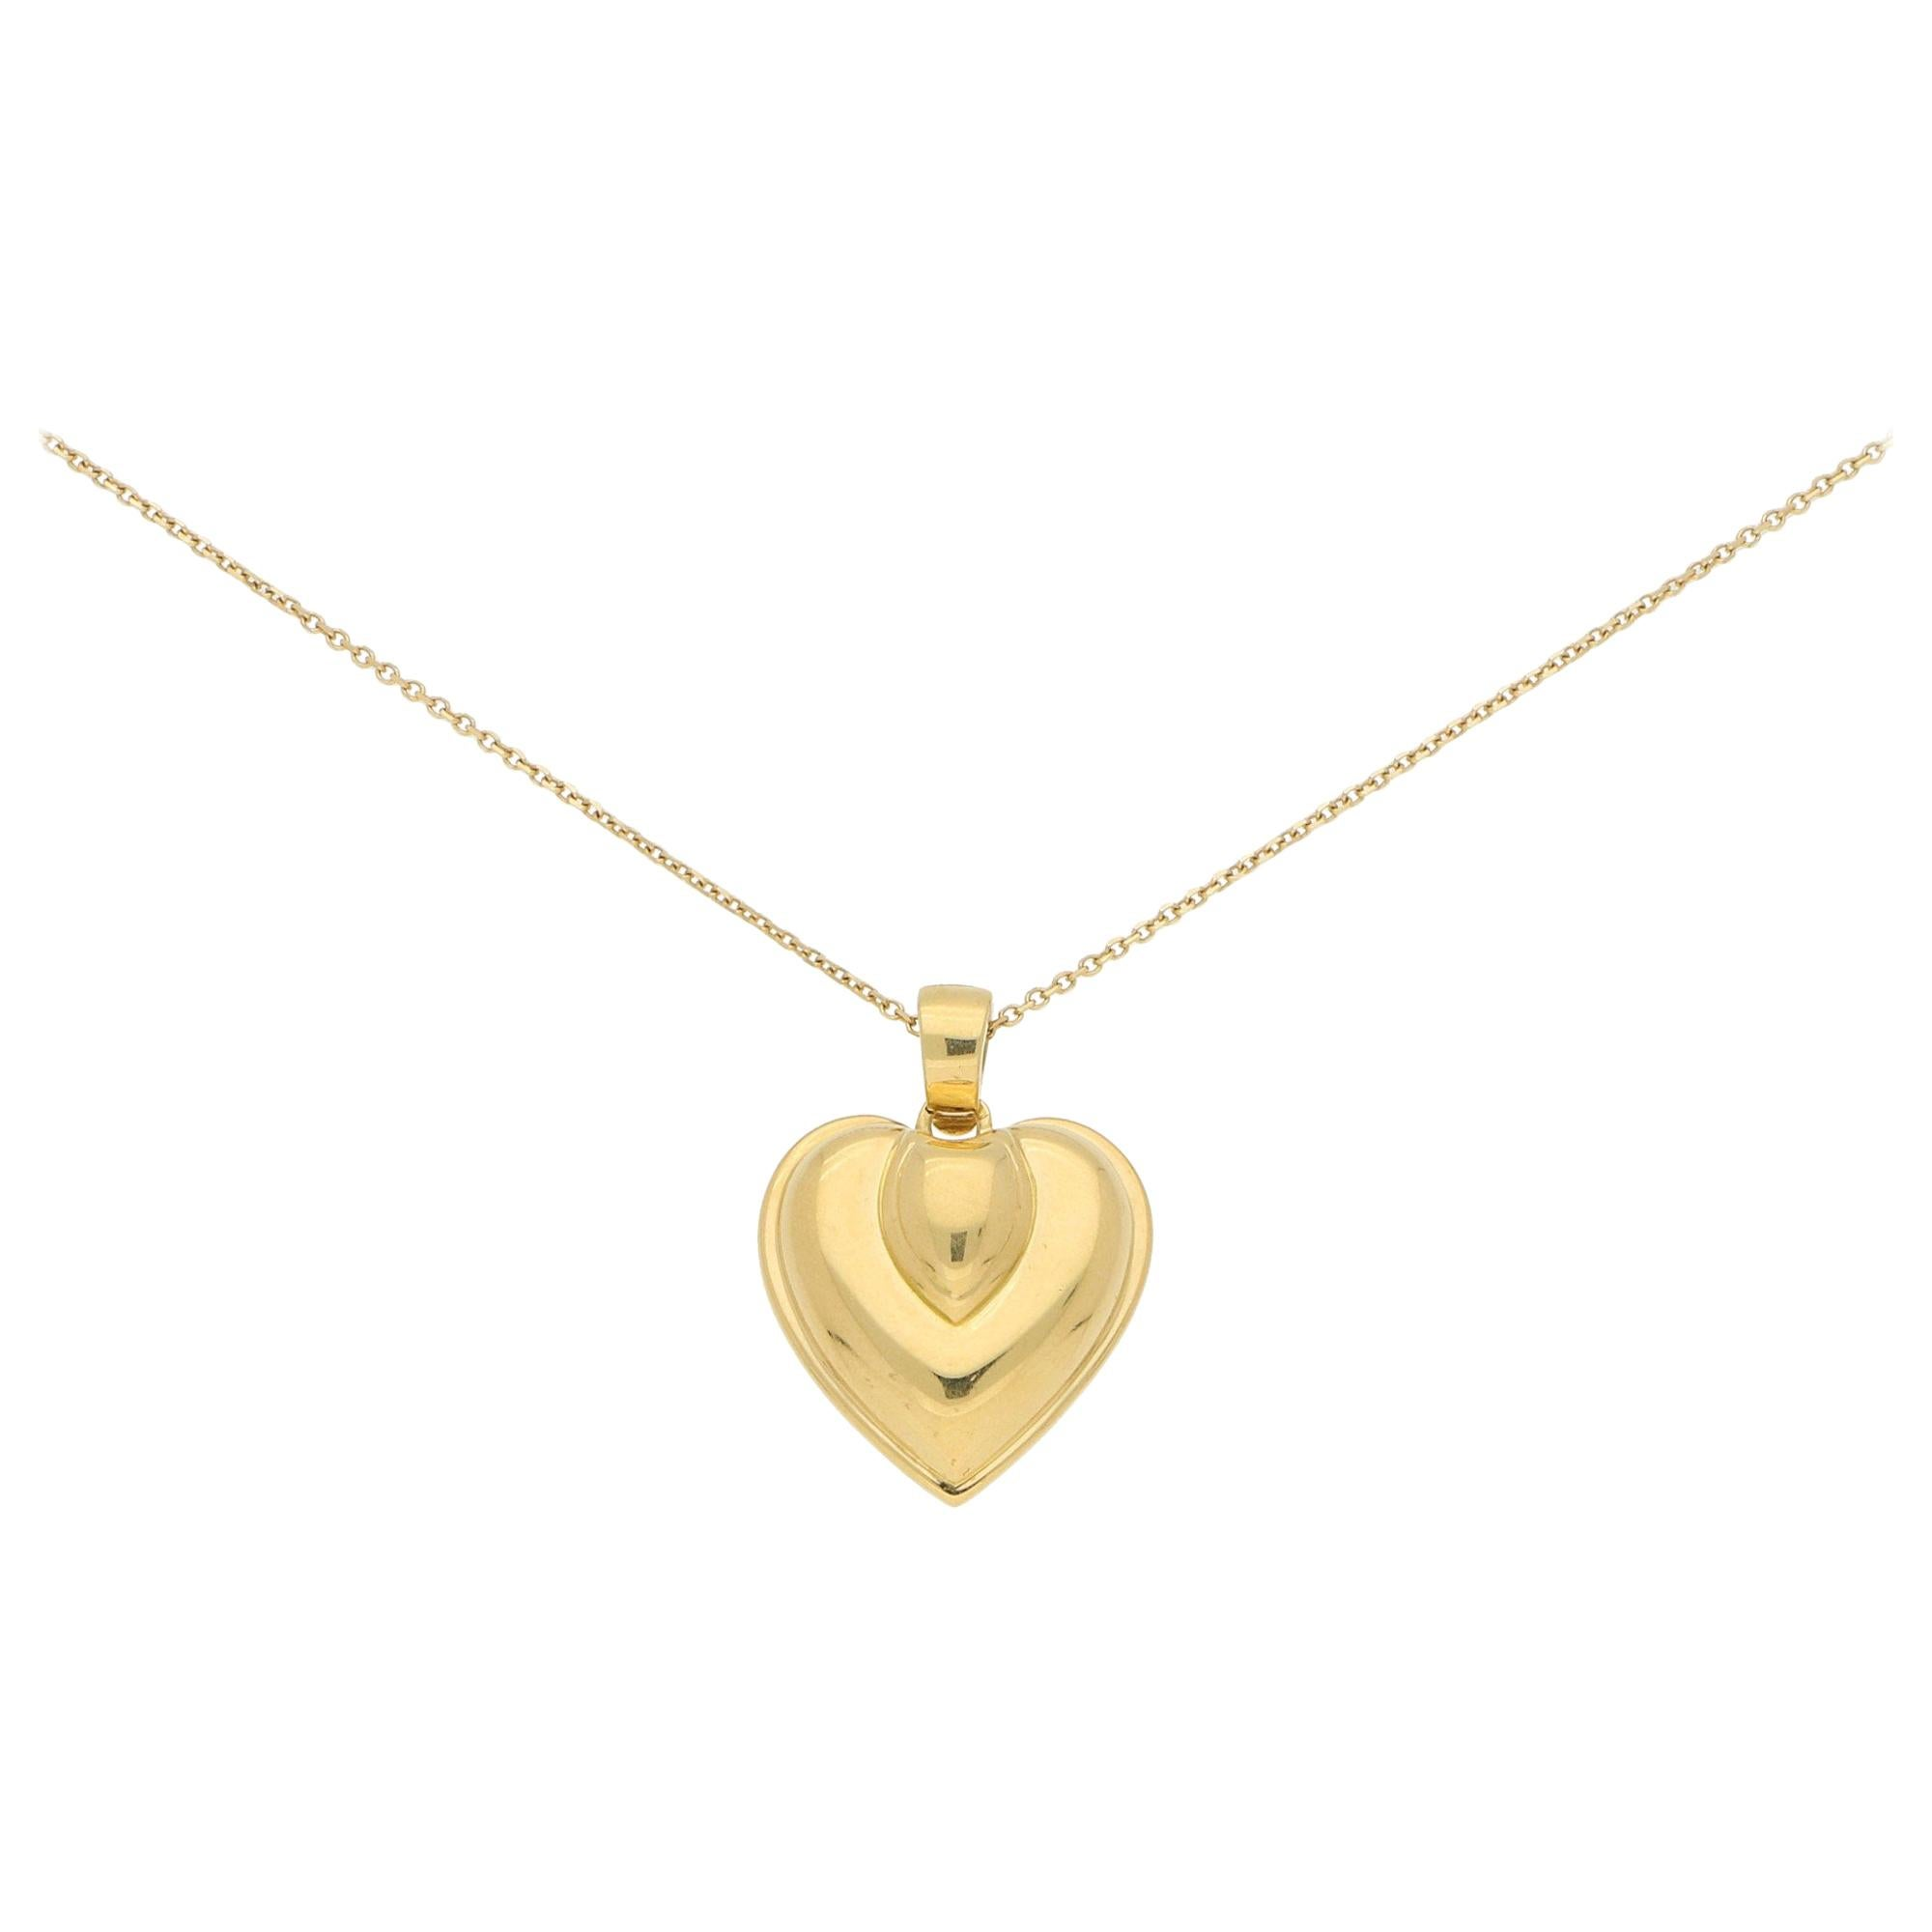 Vintage Cartier Heart Pendant in 18k Yellow Gold, 1990's